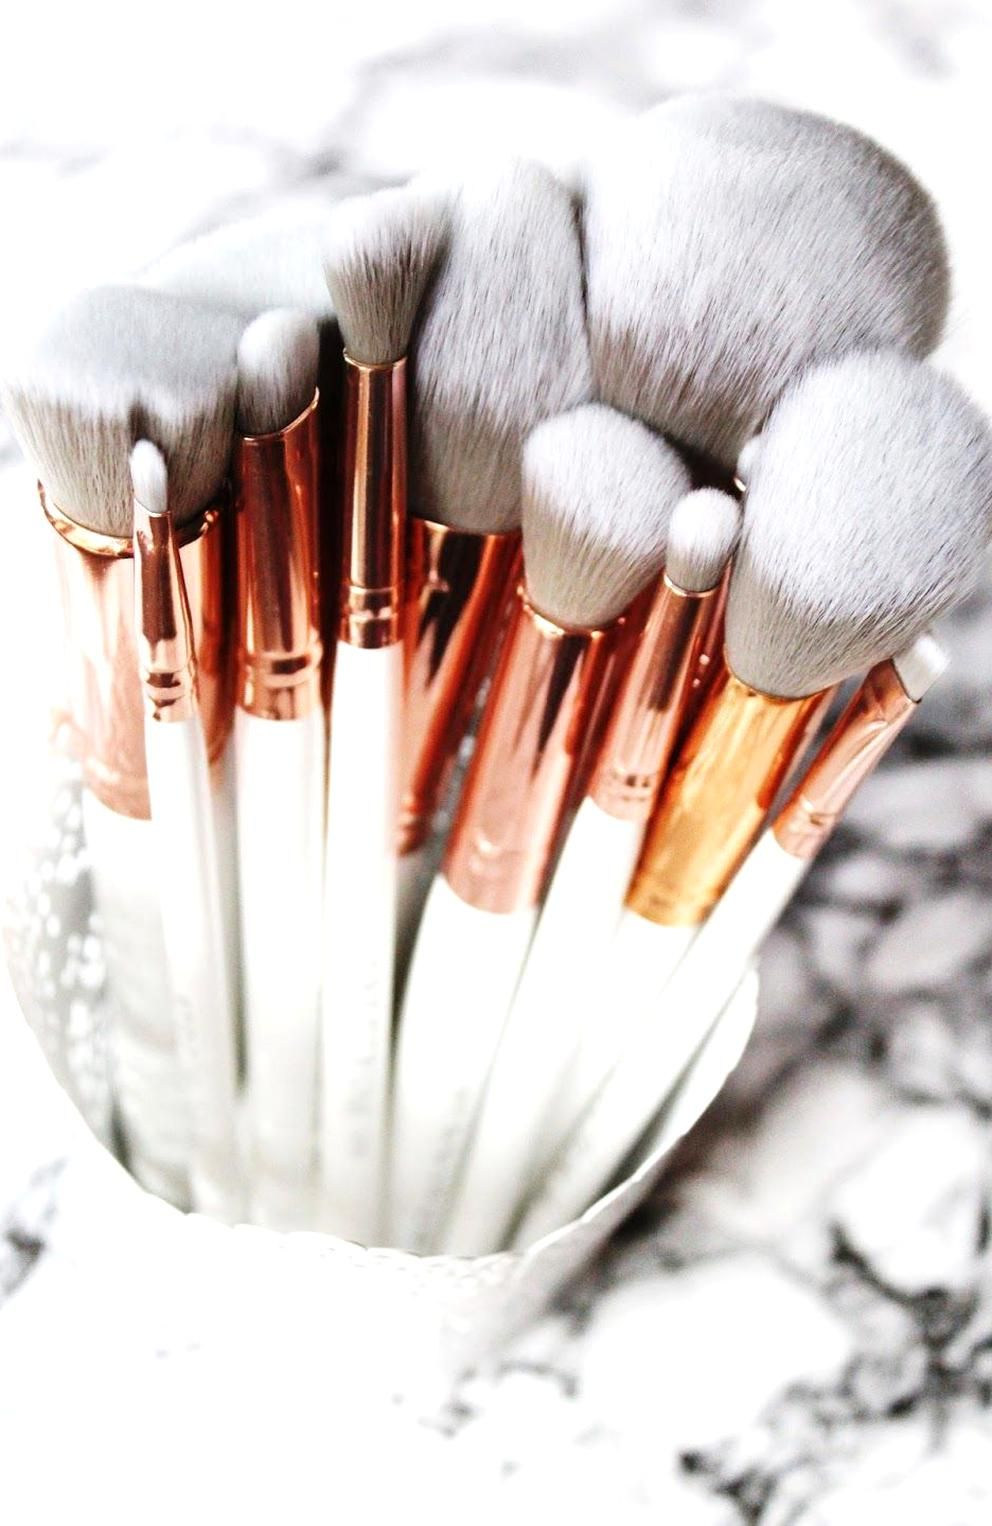 Spectrum Collections Brushes Marbleous 12 Piece Set Review